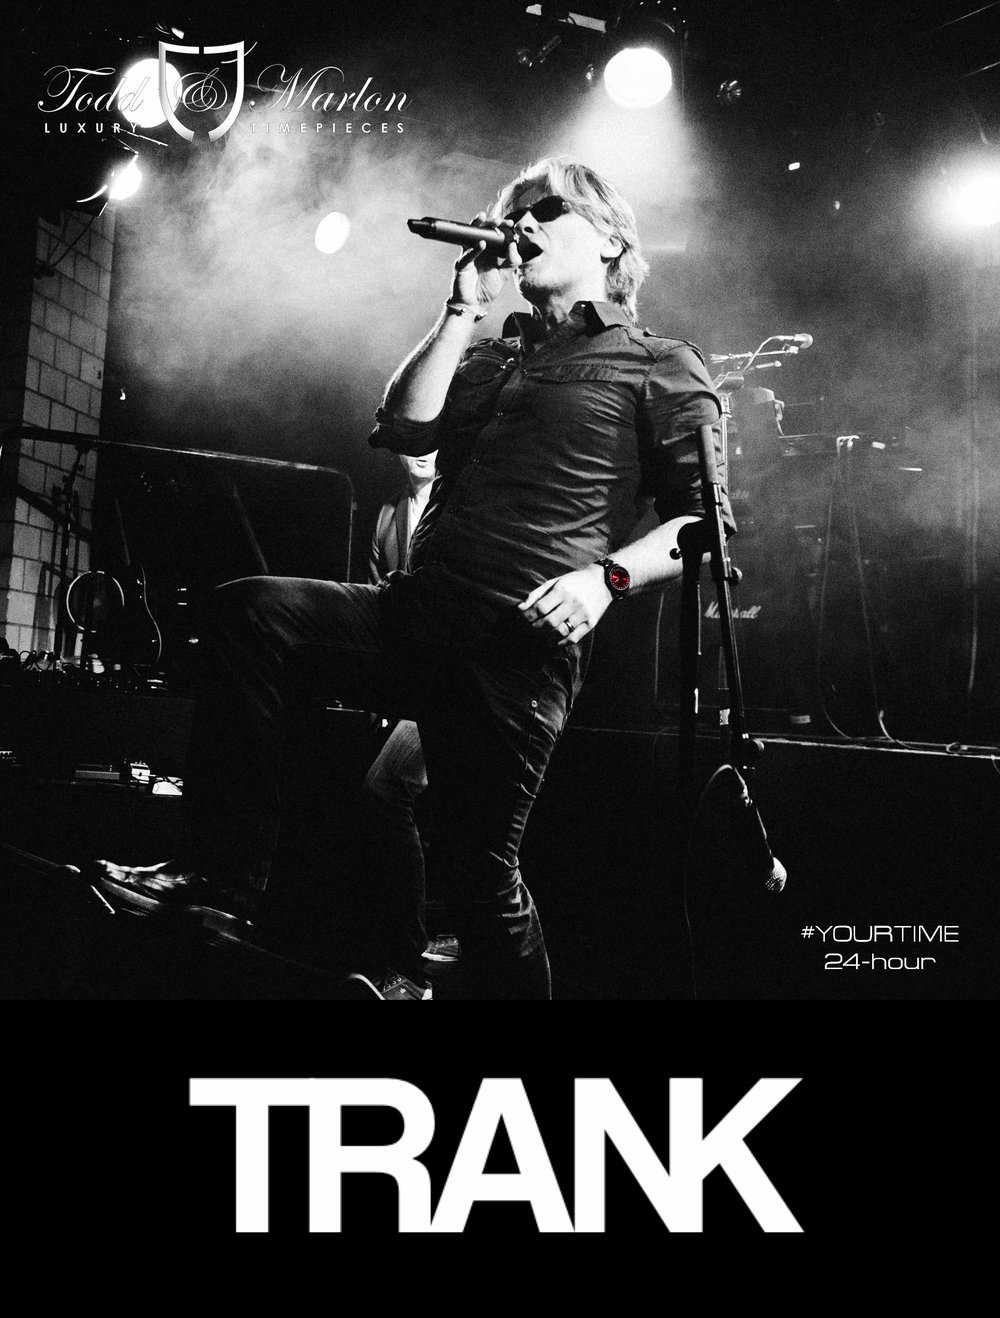 Trank is a contagious, intense, raging brand of rough-as-rock introspection. Their music blends infectious, propulsive, angry energy, with a seasoned lyrical look upon life and its trials than you'd expect from a band that sounds this powerful. A combination which very much defines their identity - between alt-rock and melodic metal.